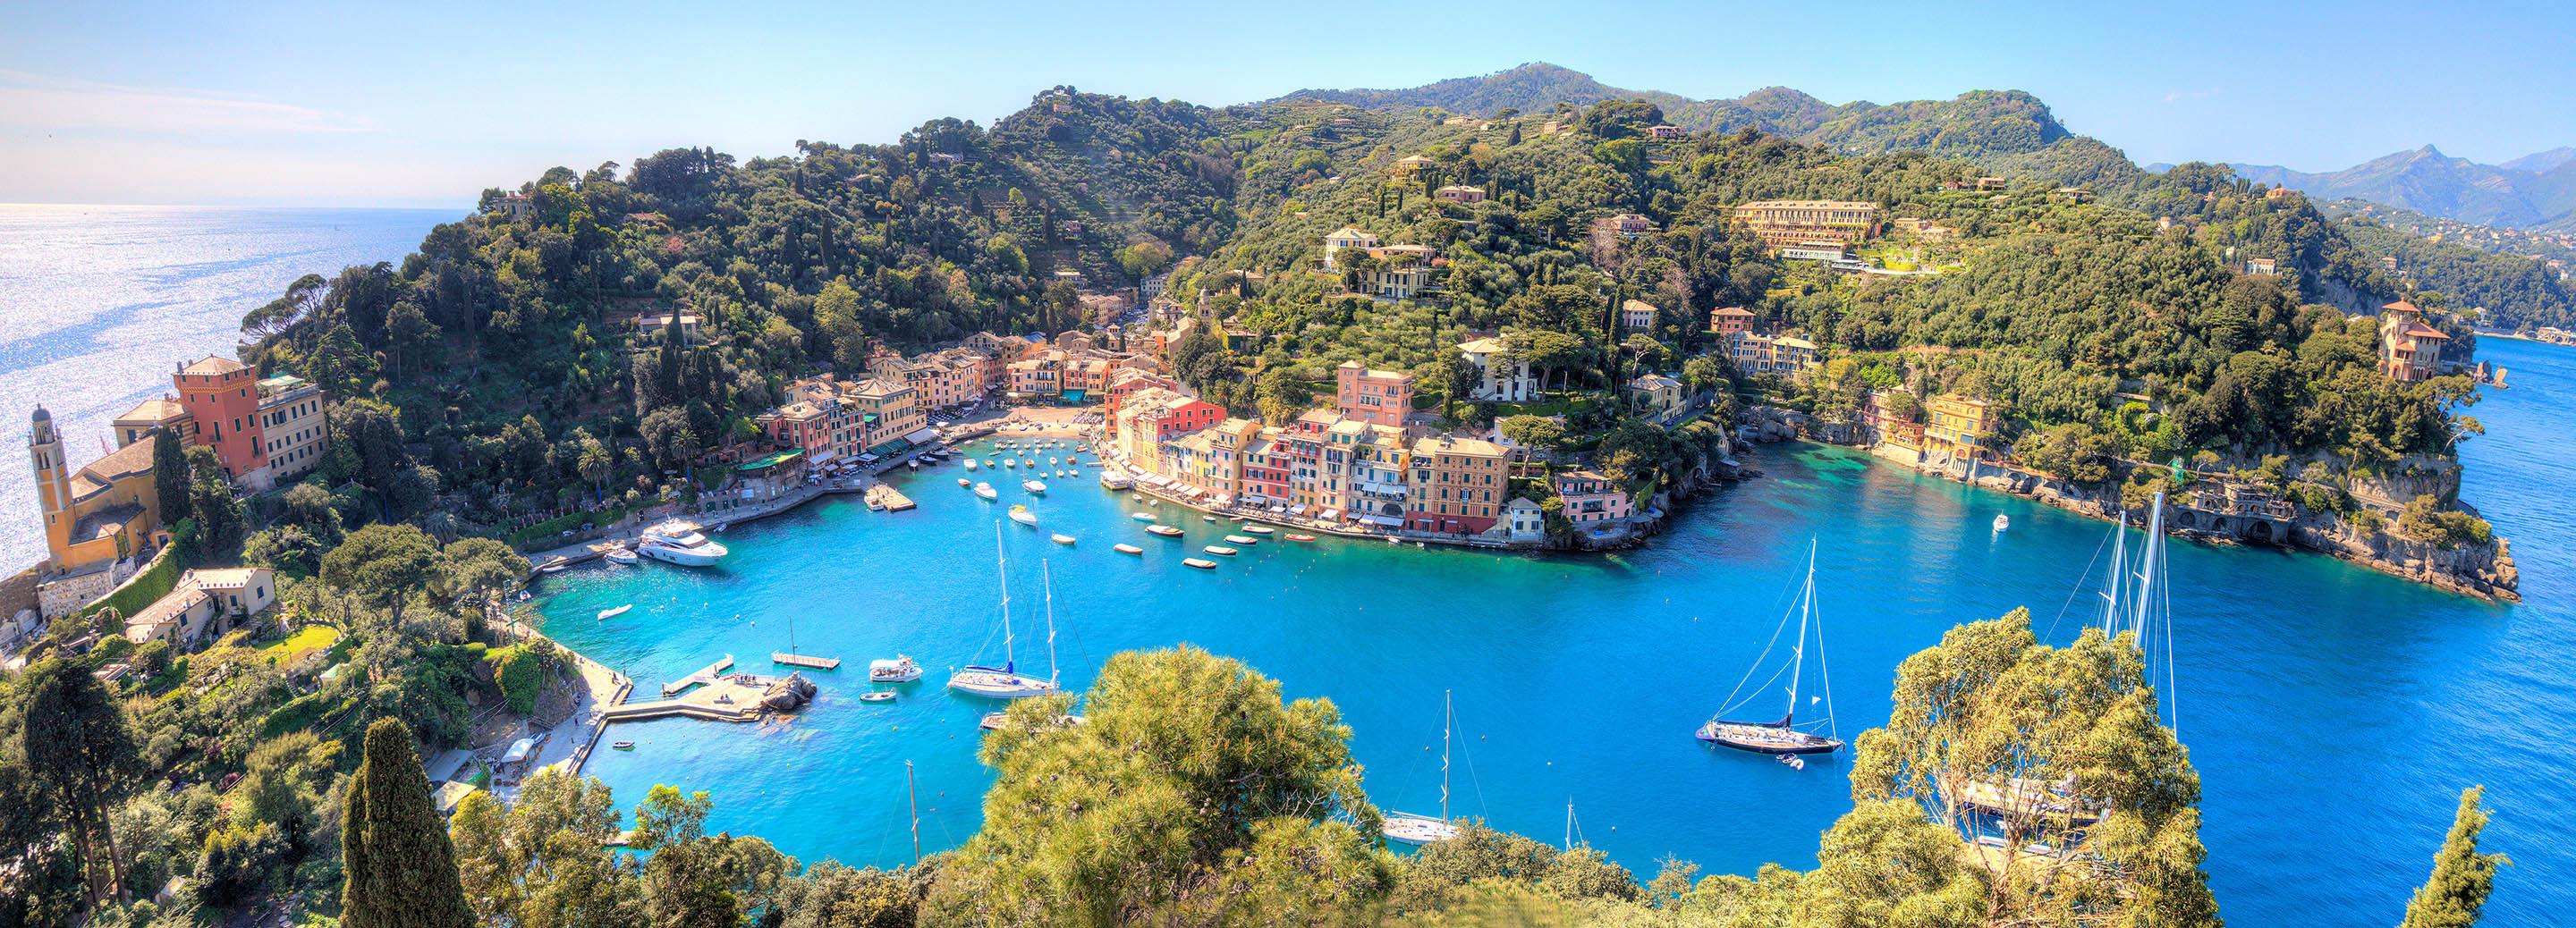 Portofino - Photo by Mauro Bricca - http://VirtualTour.Vision